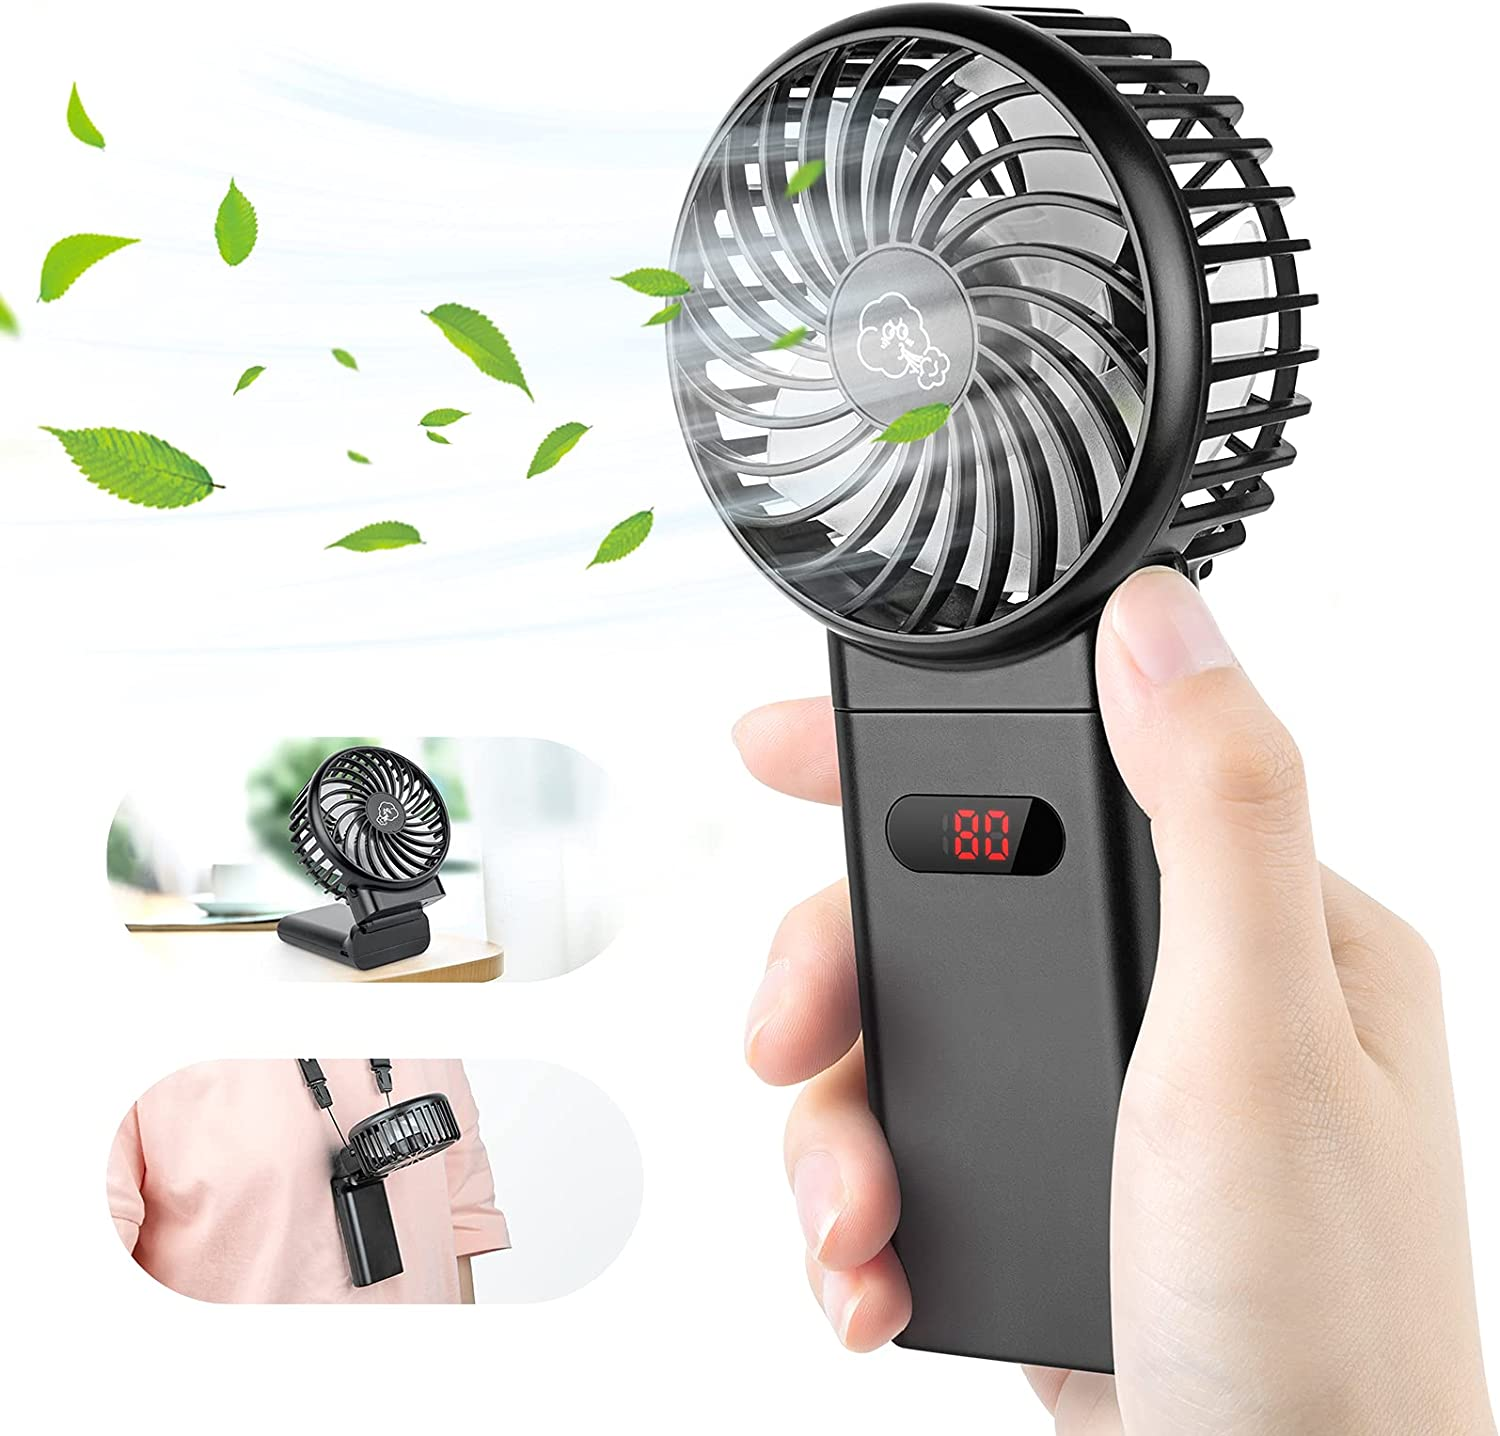 Mini Handheld Limited Special Price Fan - 4000mAh USB 4 Sale Spee Rechargeable Portable